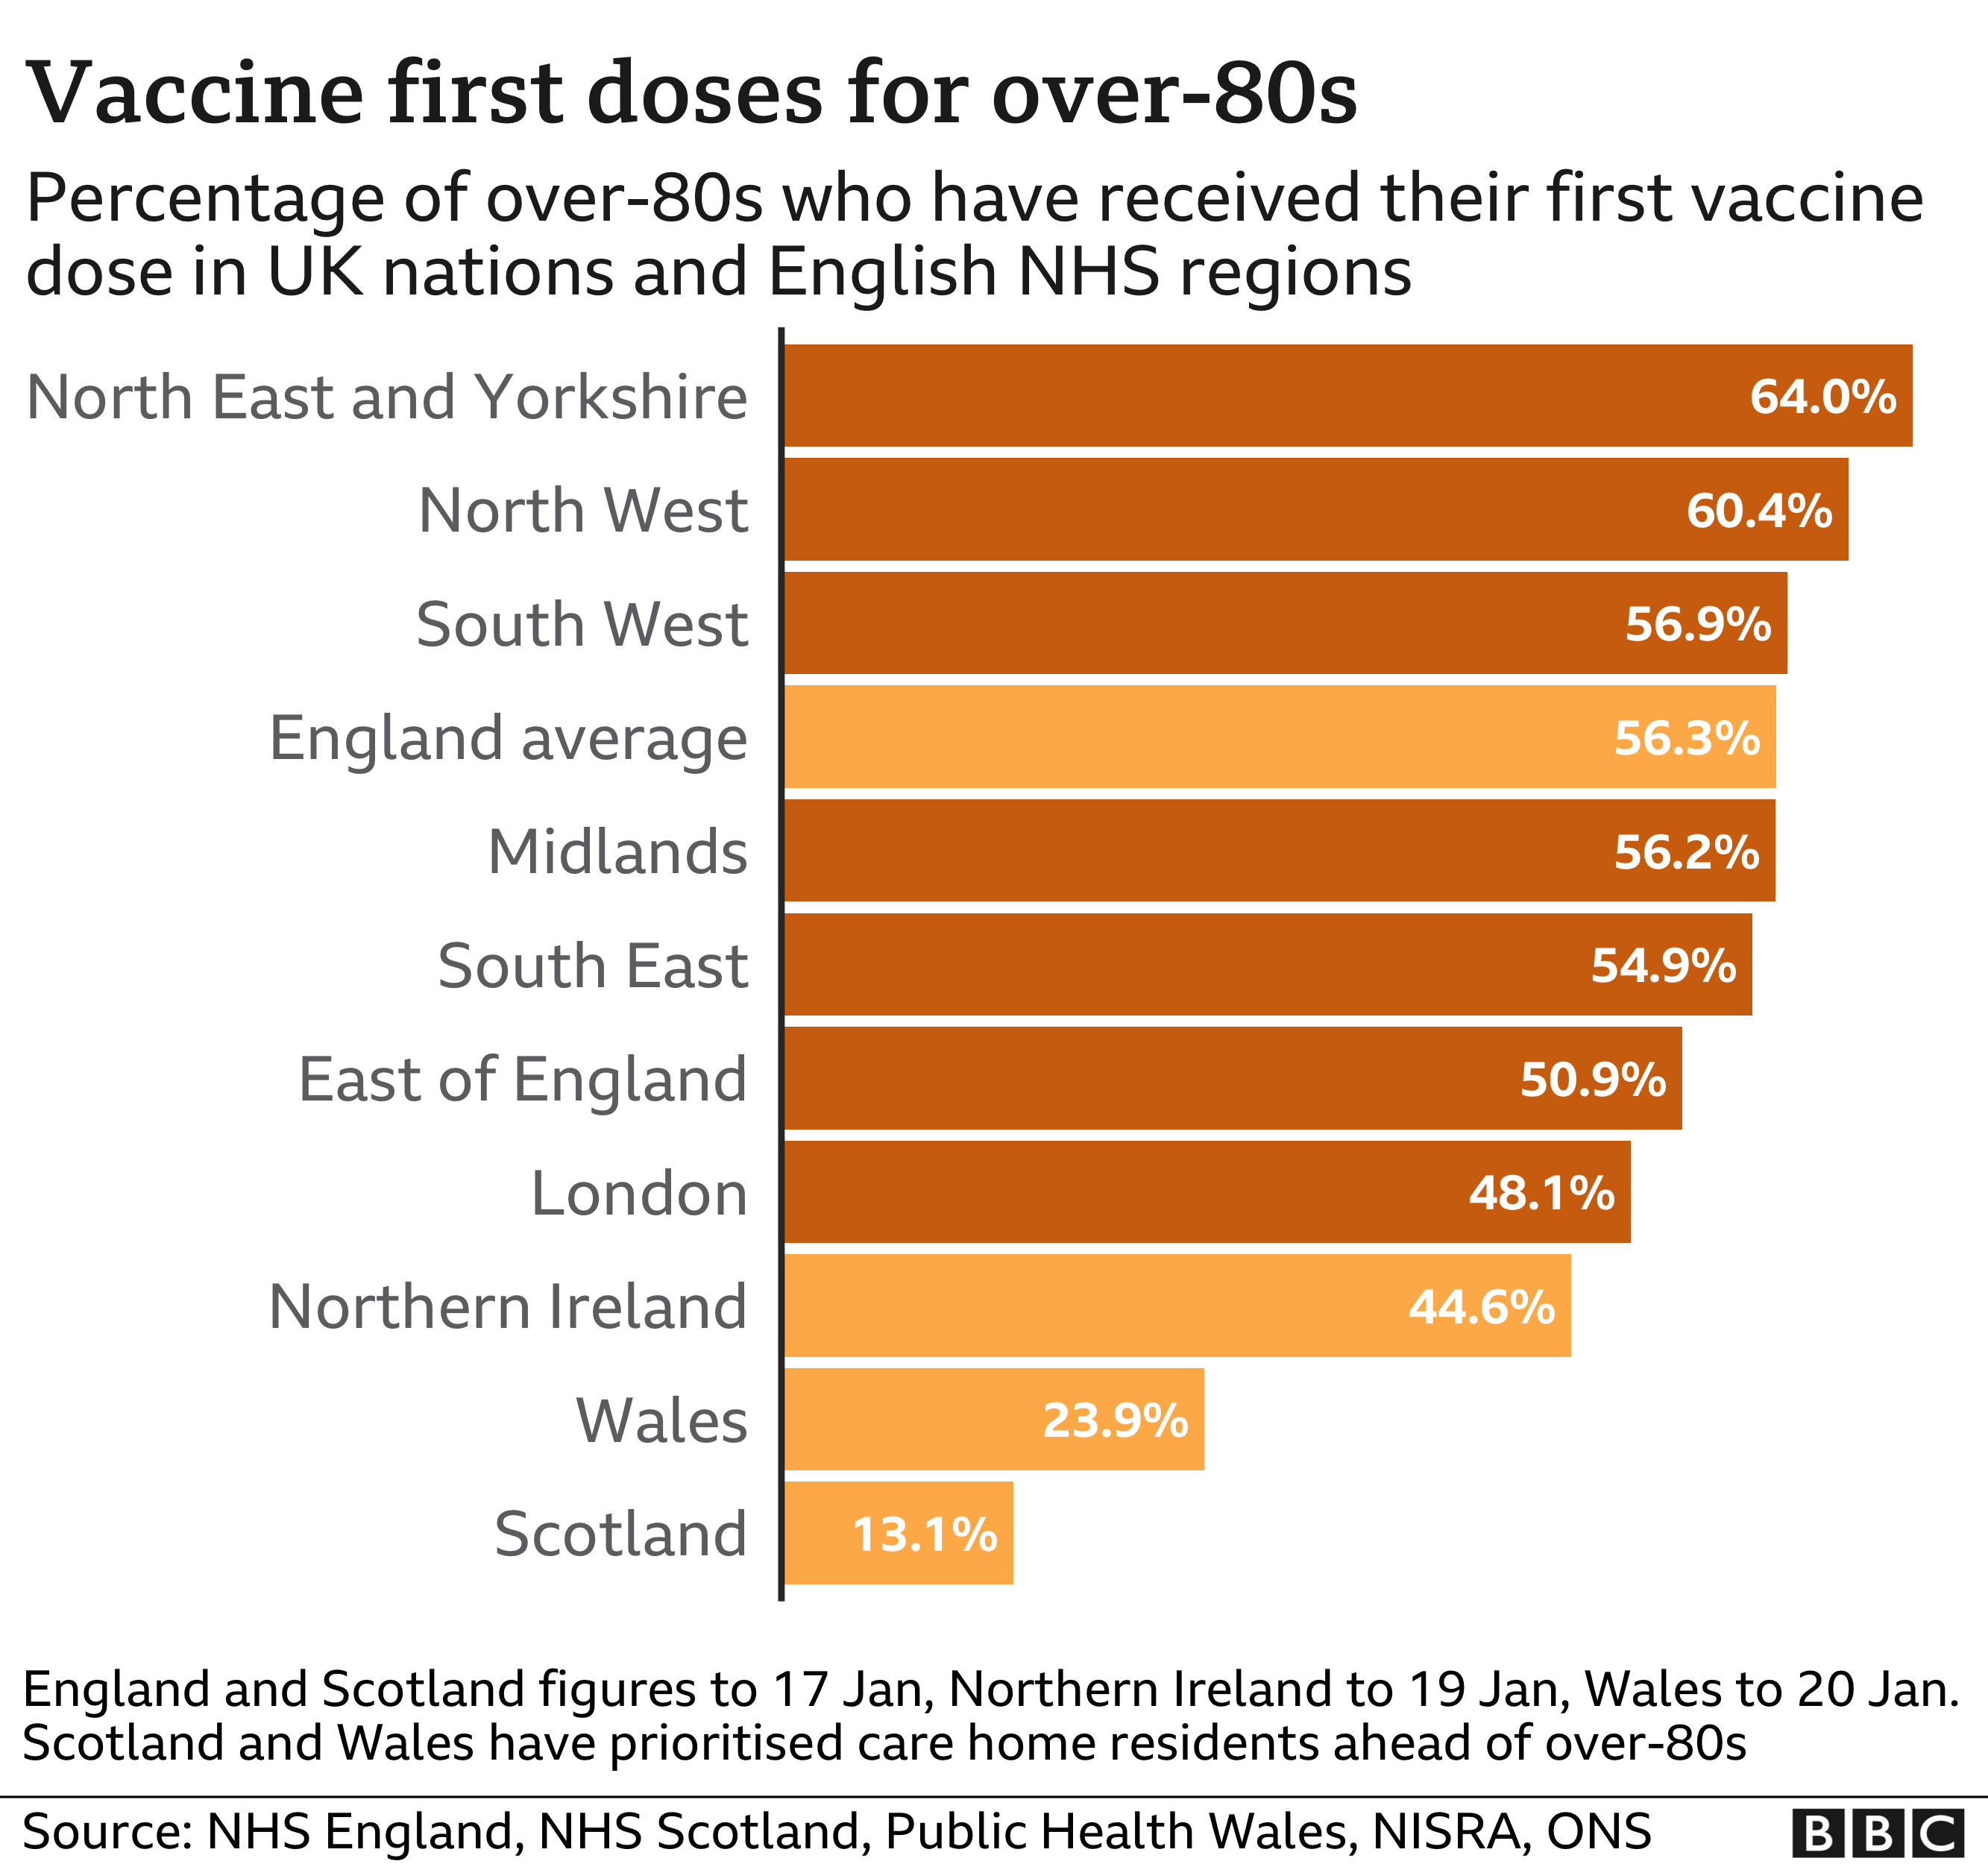 Chart showing vaccine uptake across the UK